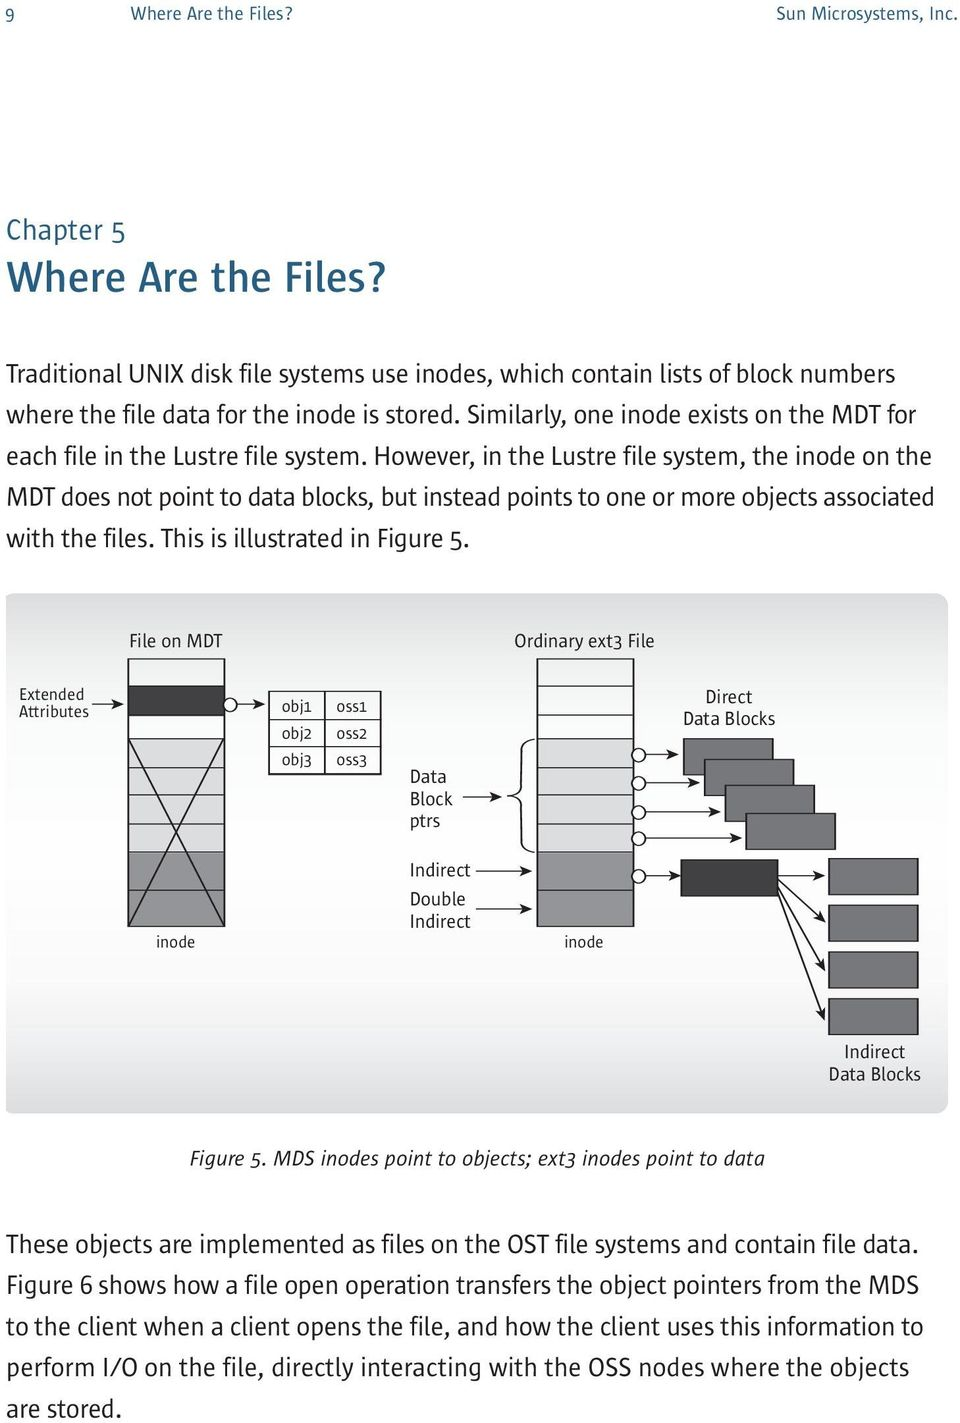 However, in the Lustre file system, the inode on the MDT does not point to data blocks, but instead points to one or more objects associated with the files. This is illustrated in Figure 5.